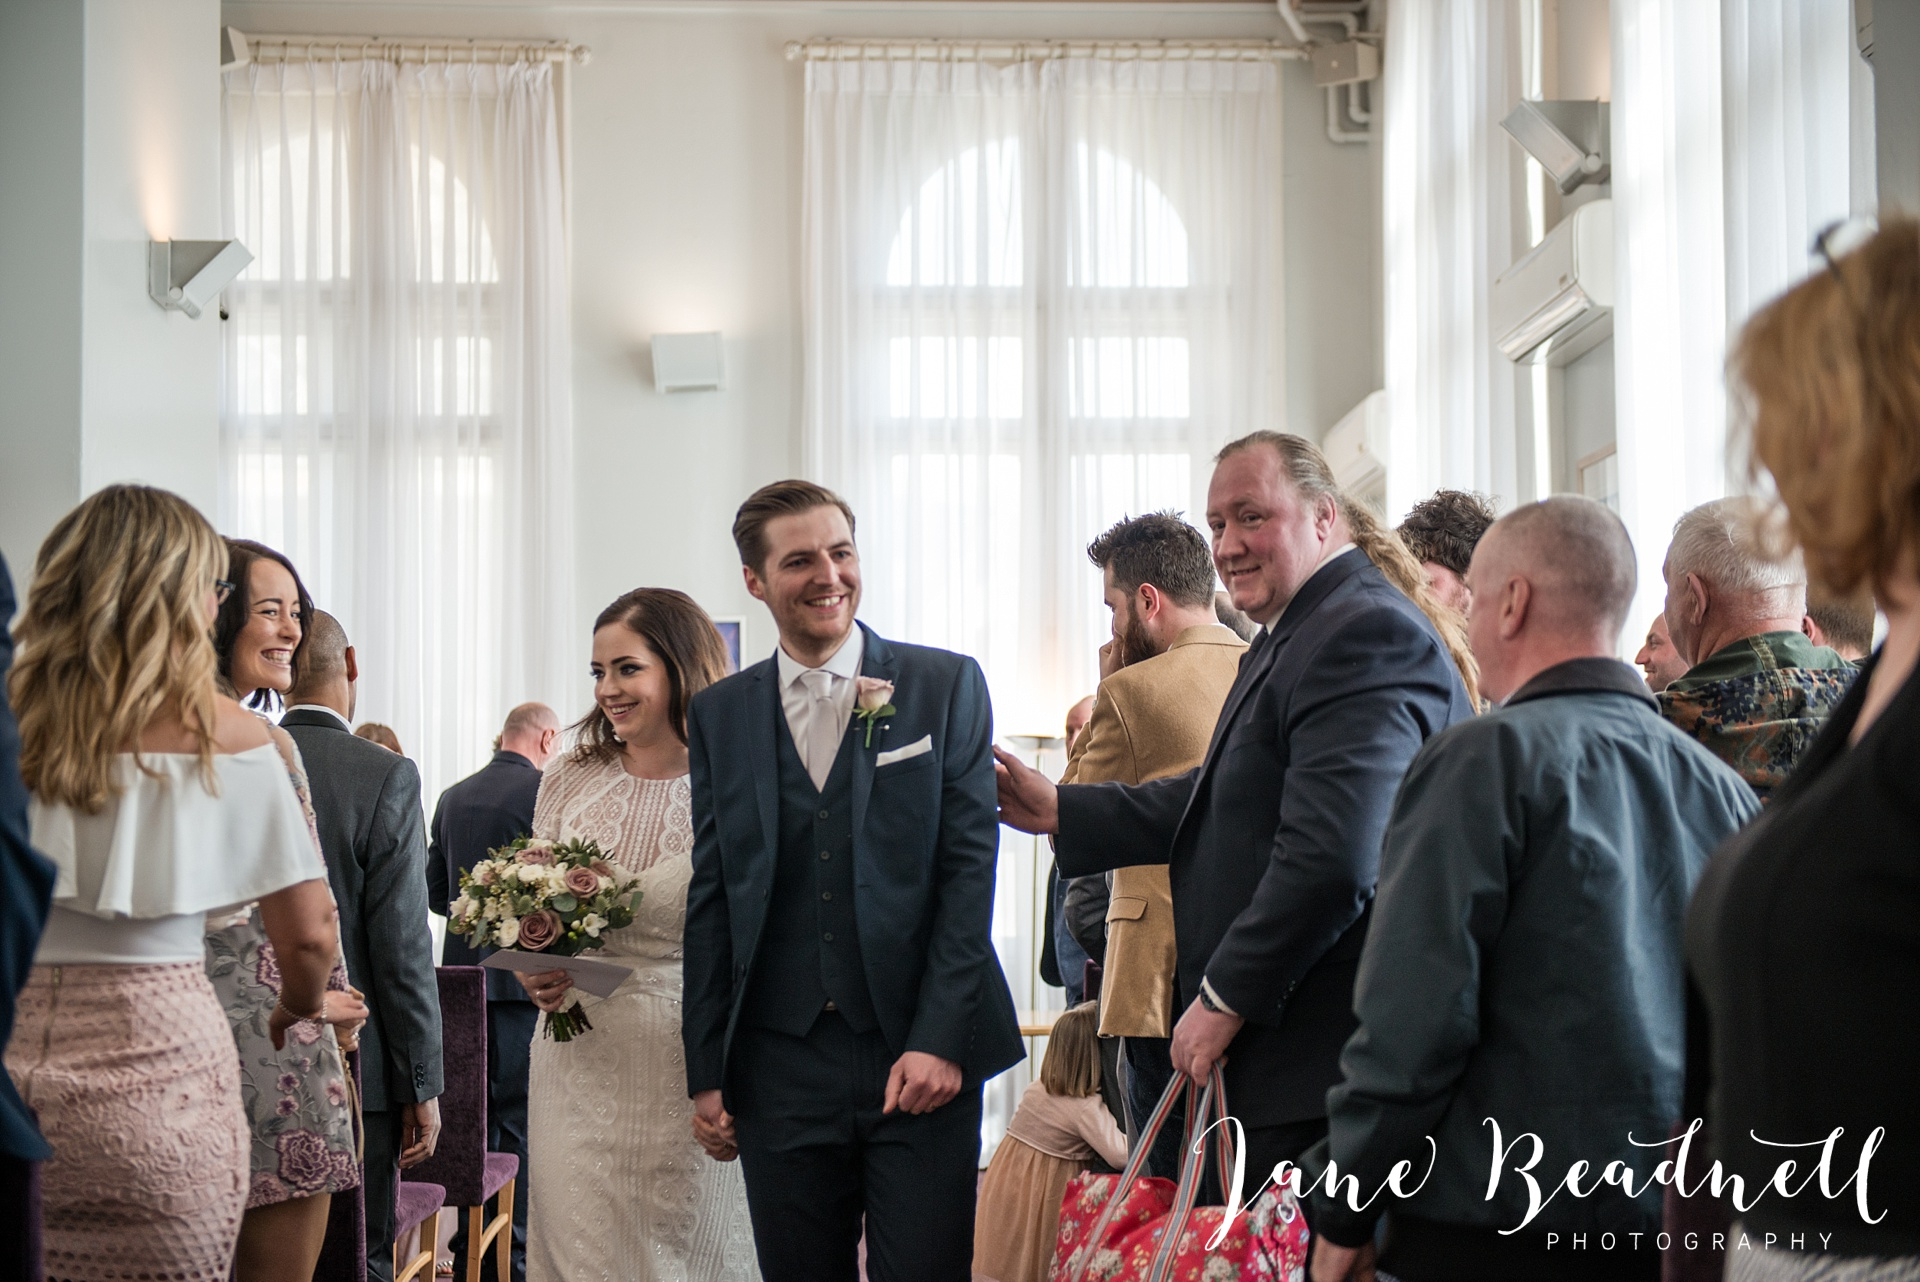 Wedding photography Cross Keys Leeds Wedding Jane Beadnell Photography_0038